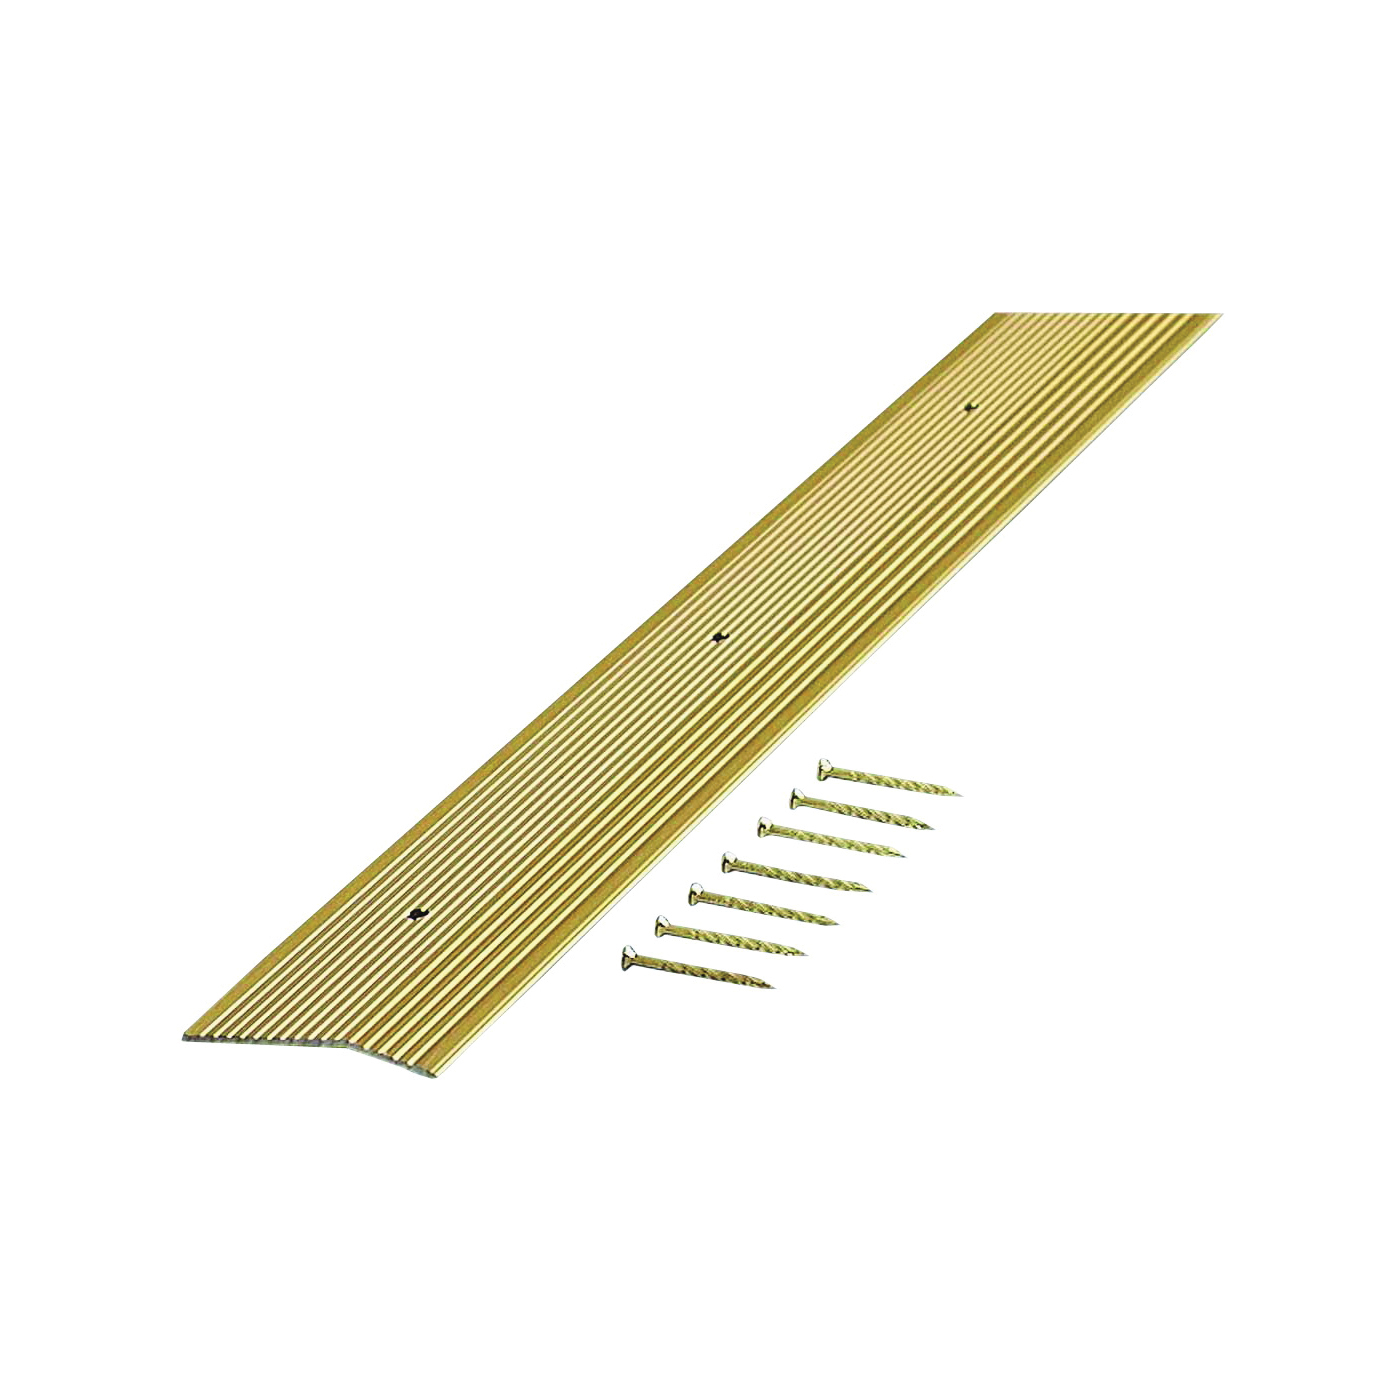 Picture of M-D 79244 Carpet Trim, 36 in L, 2 in W, Fluted Surface, Aluminum, Satin Brass